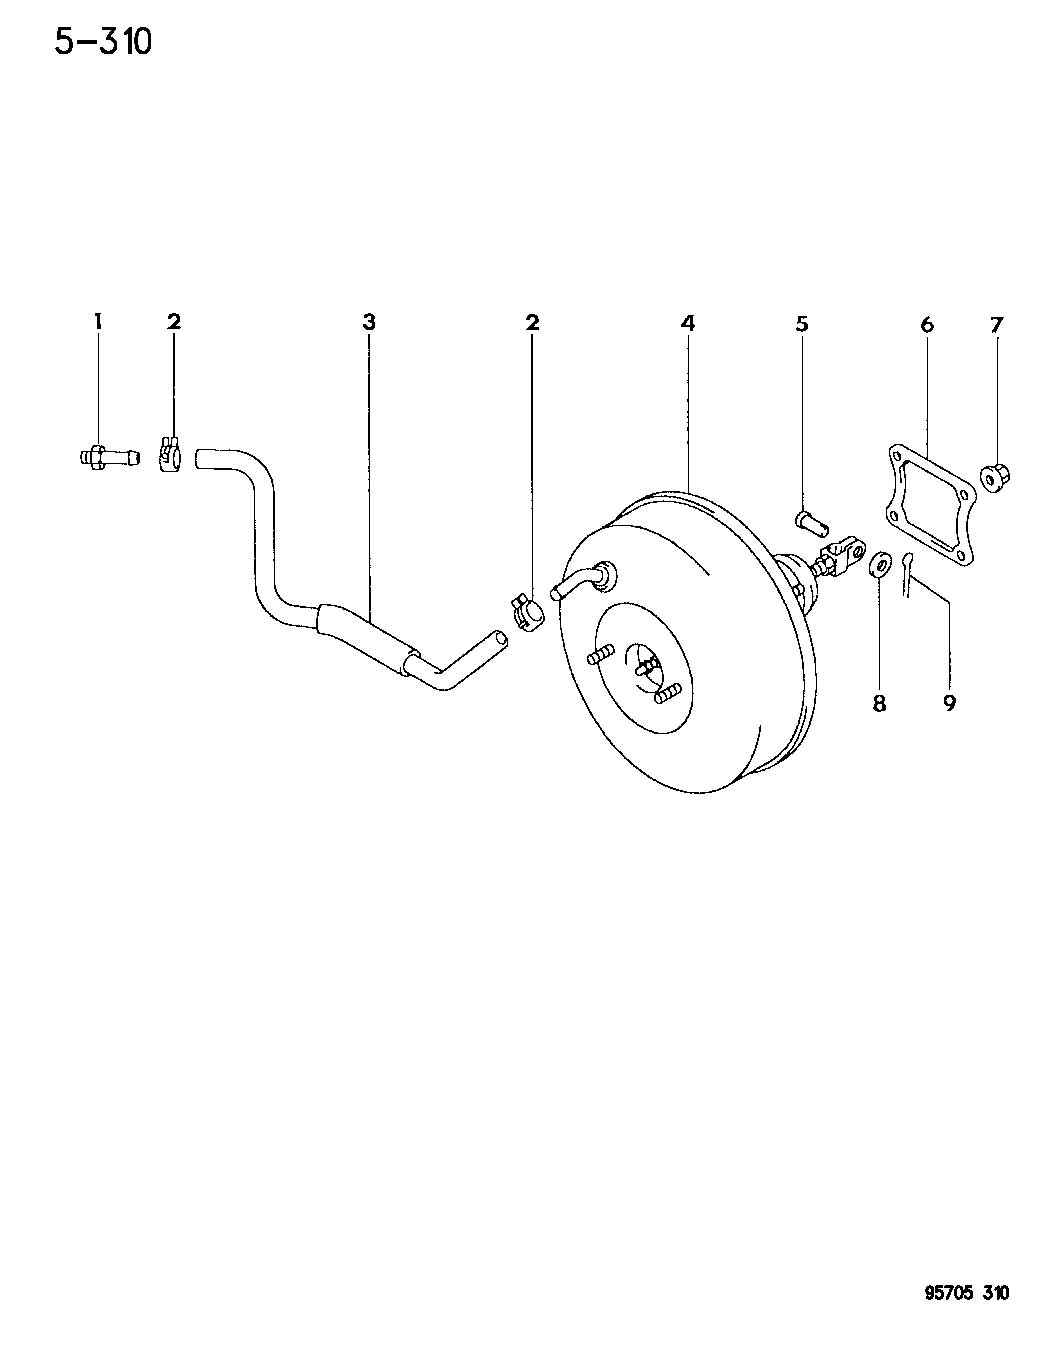 Diagram BOOSTER, POWER BRAKE LE 21,41-COLT, SUMMIT for your Dodge